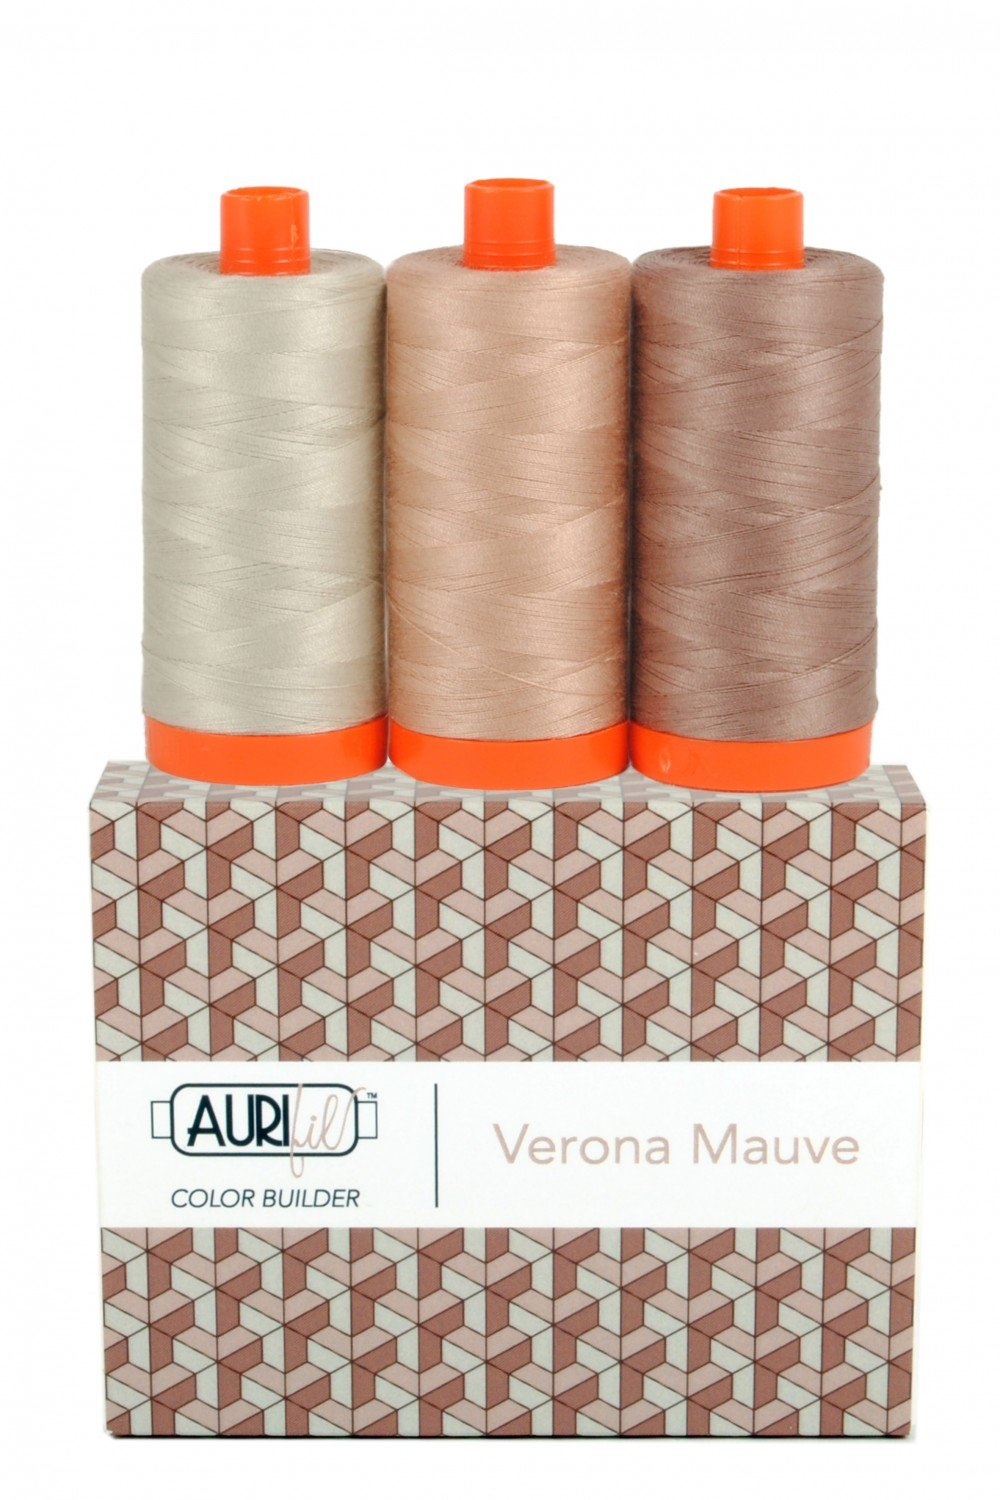 Aurifil Color Builder 3pc Set - Verona Mauve